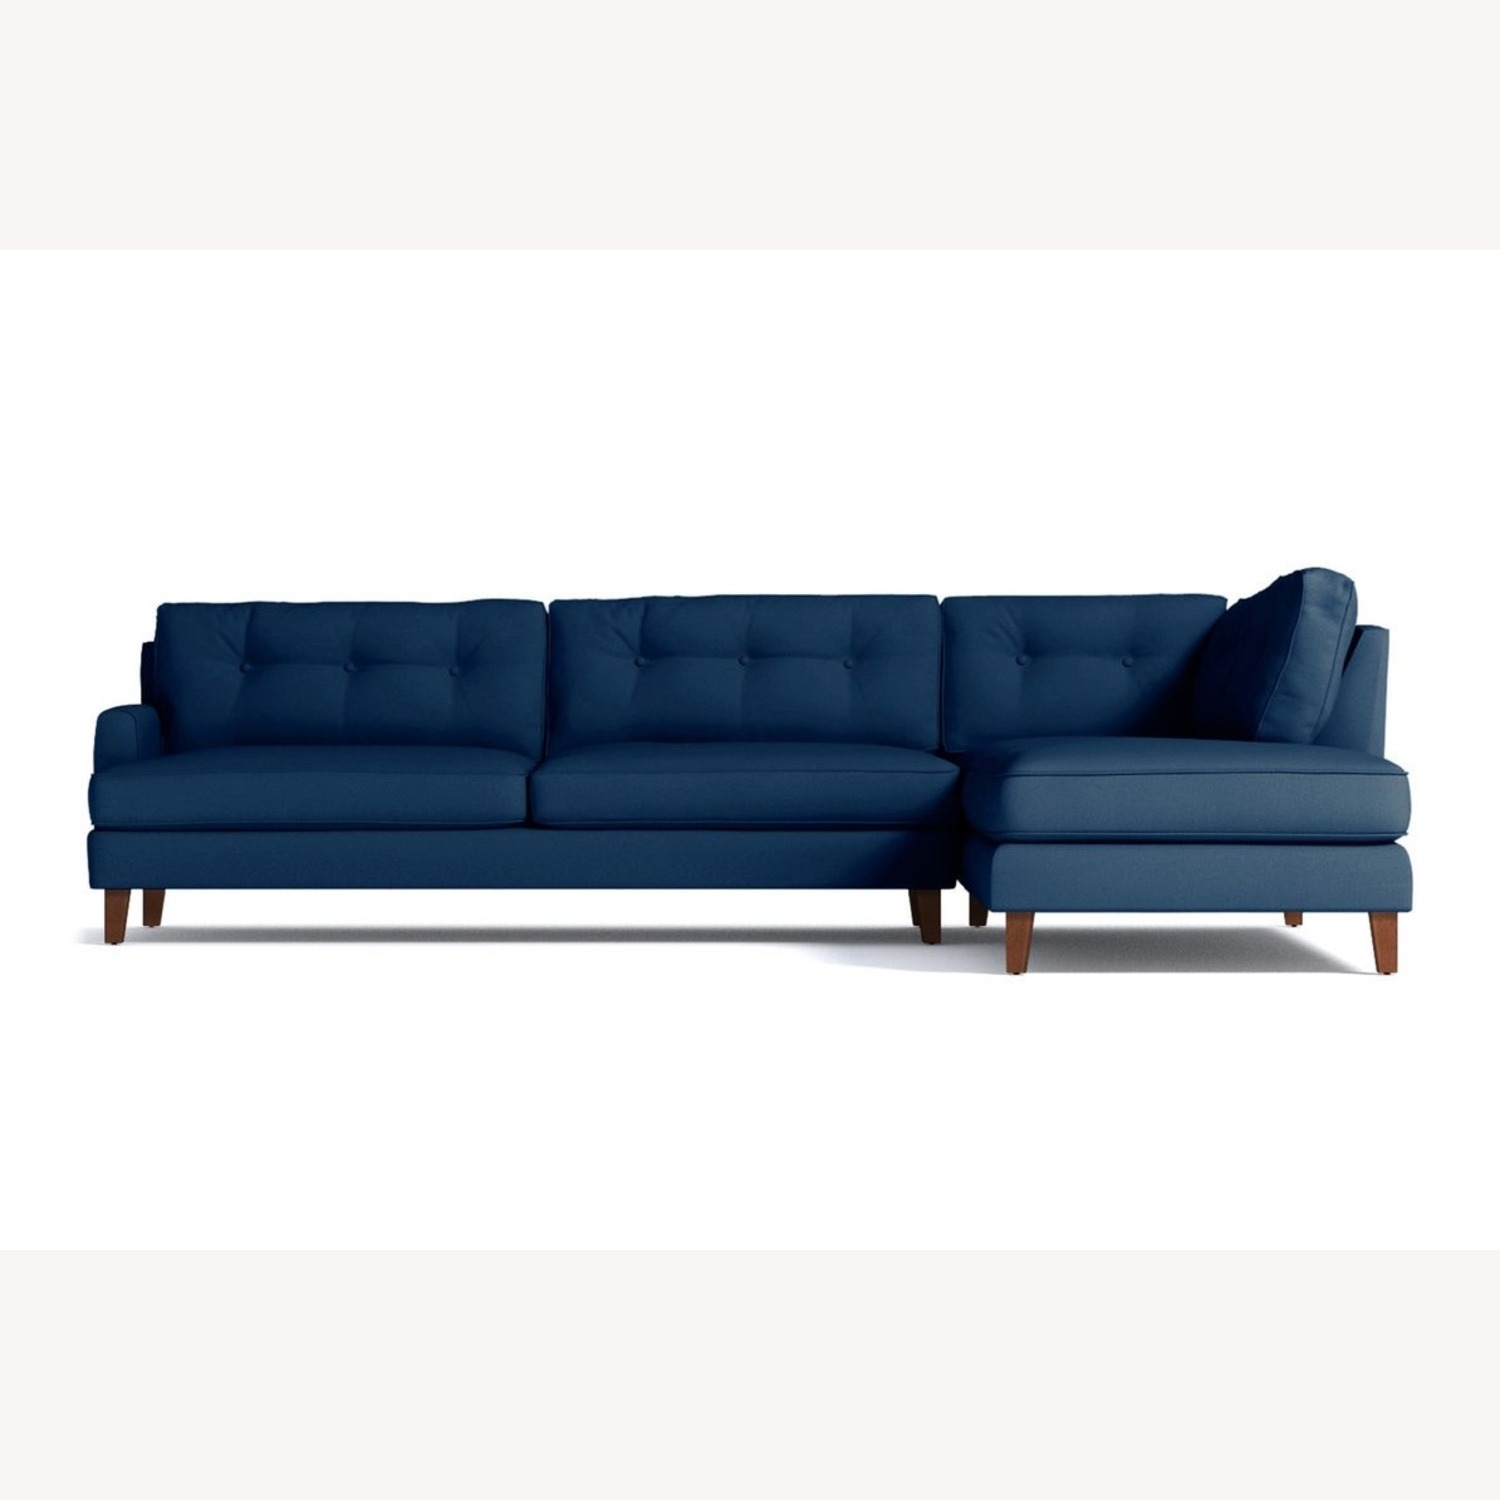 Trendy 2-Piece Sectional Sofa - image-1